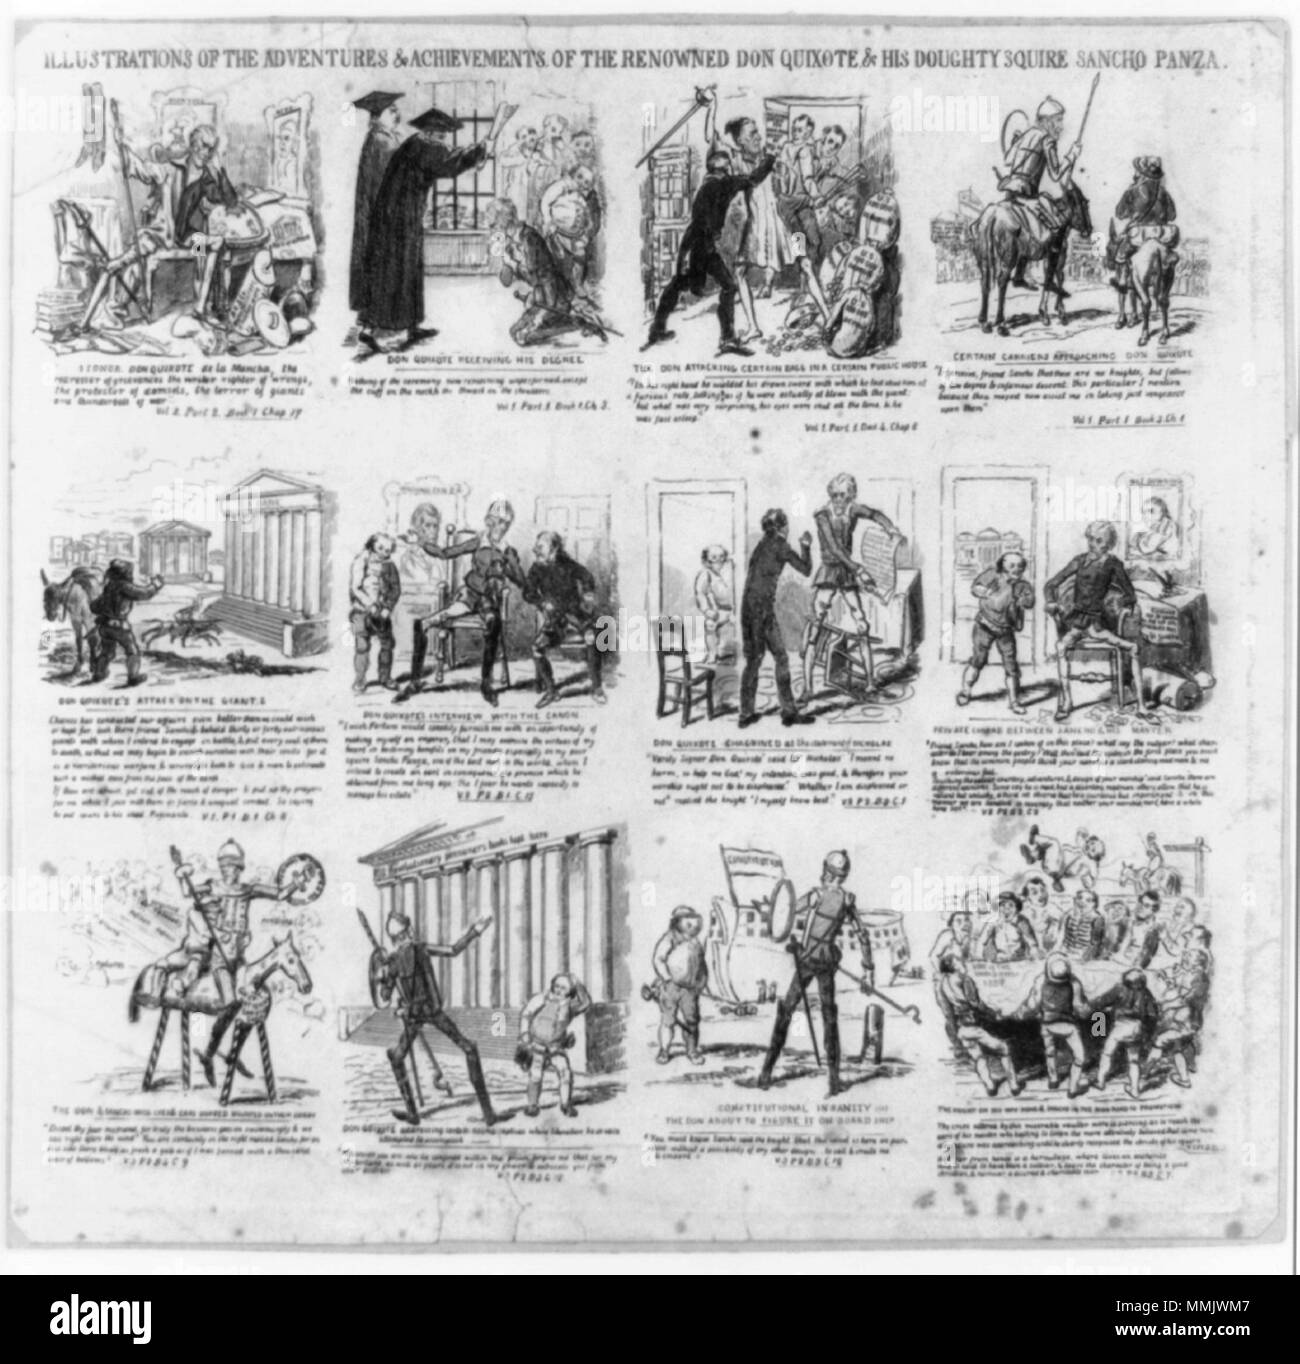 . Illustrations of the adventures of the renowned Don Quixote & his doughty squire Sancho Panza. Engraving. By D.C. Johnston.  . 1837.   David Claypoole Johnston (1798–1865)   Alternative names David Claypool Johnston  Description American cartoonist, printmaker, painter and actor  Date of birth/death 25 March 1799 8 November 1865  Location of birth/death Philadelphia Dorchester, MA  Work location Boston  Authority control  : Q5232408 VIAF:?57684331 ISNI:?0000 0001 1650 1297 ULAN:?500031218 LCCN:?n50040318 GND:?129153508 WorldCat 1837 DonQuixote byDClaypooleJohnston LibraryOfCongress - Stock Image